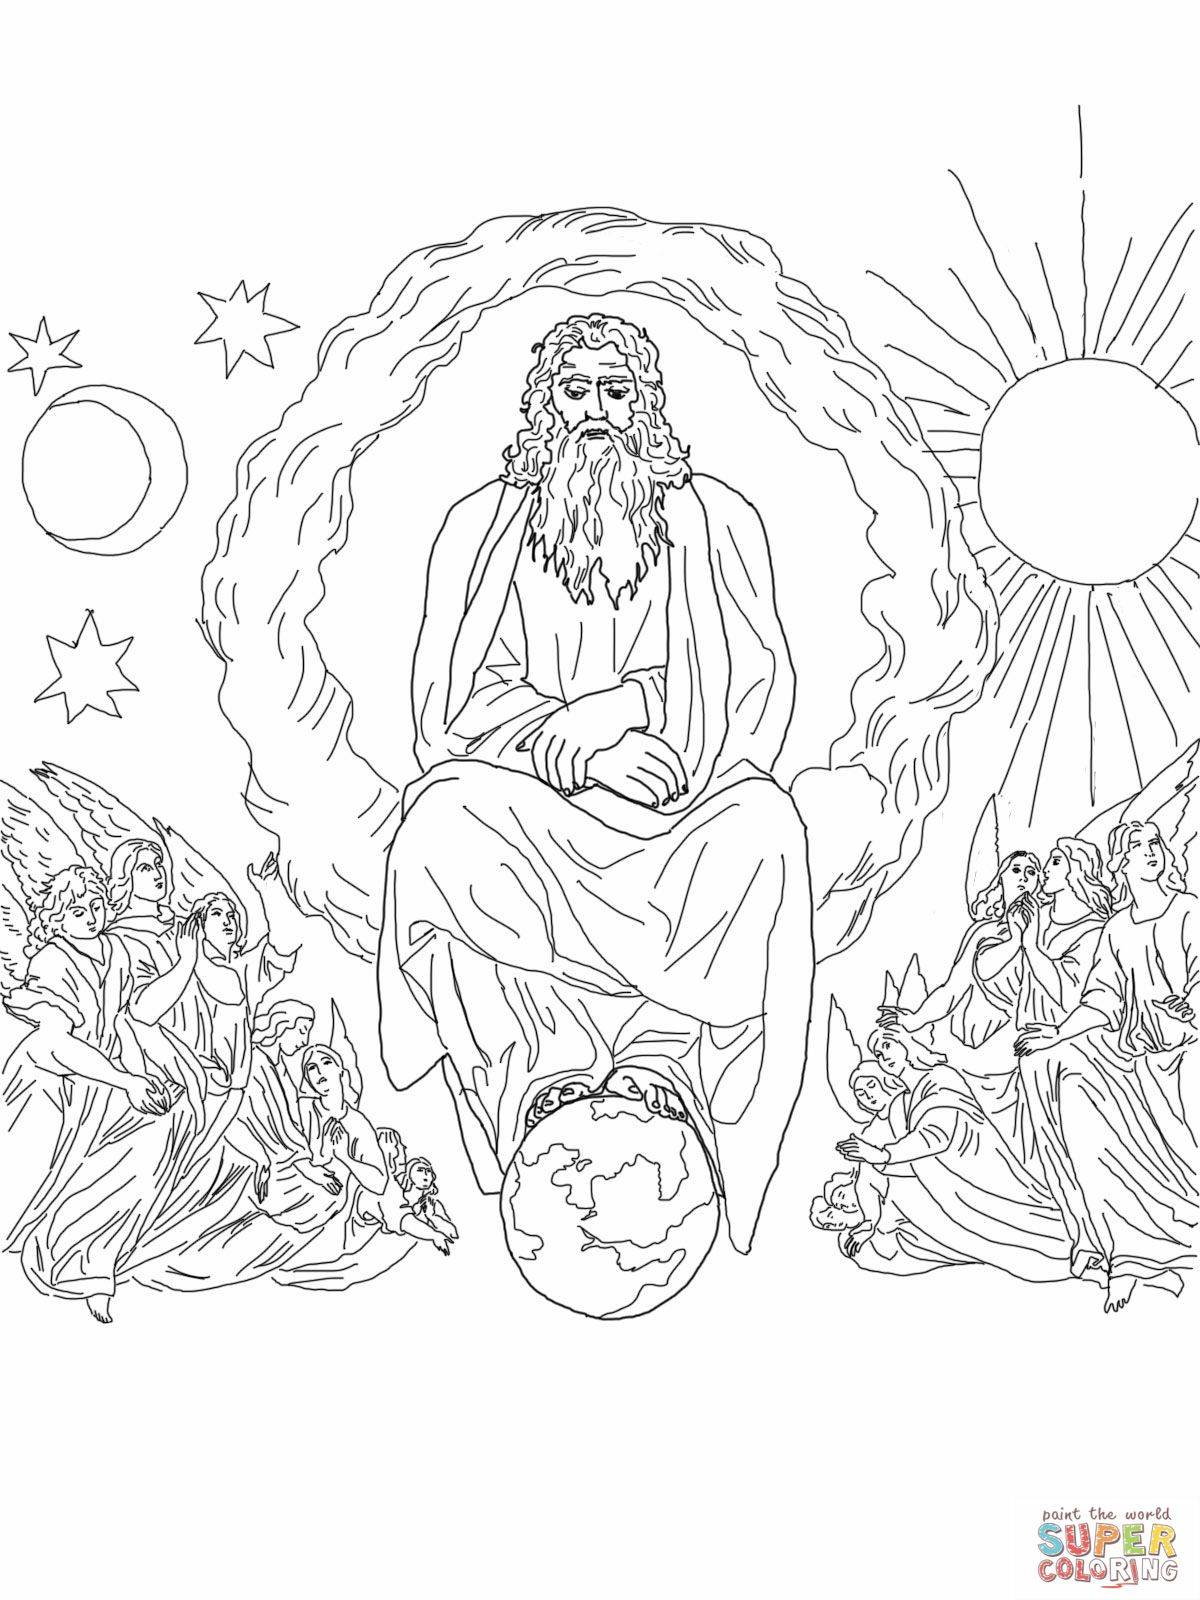 coloring sheet 7 days of creation coloring pages free day 1 creation worksheet for toddlers google search pages sheet of 7 coloring days free creation coloring